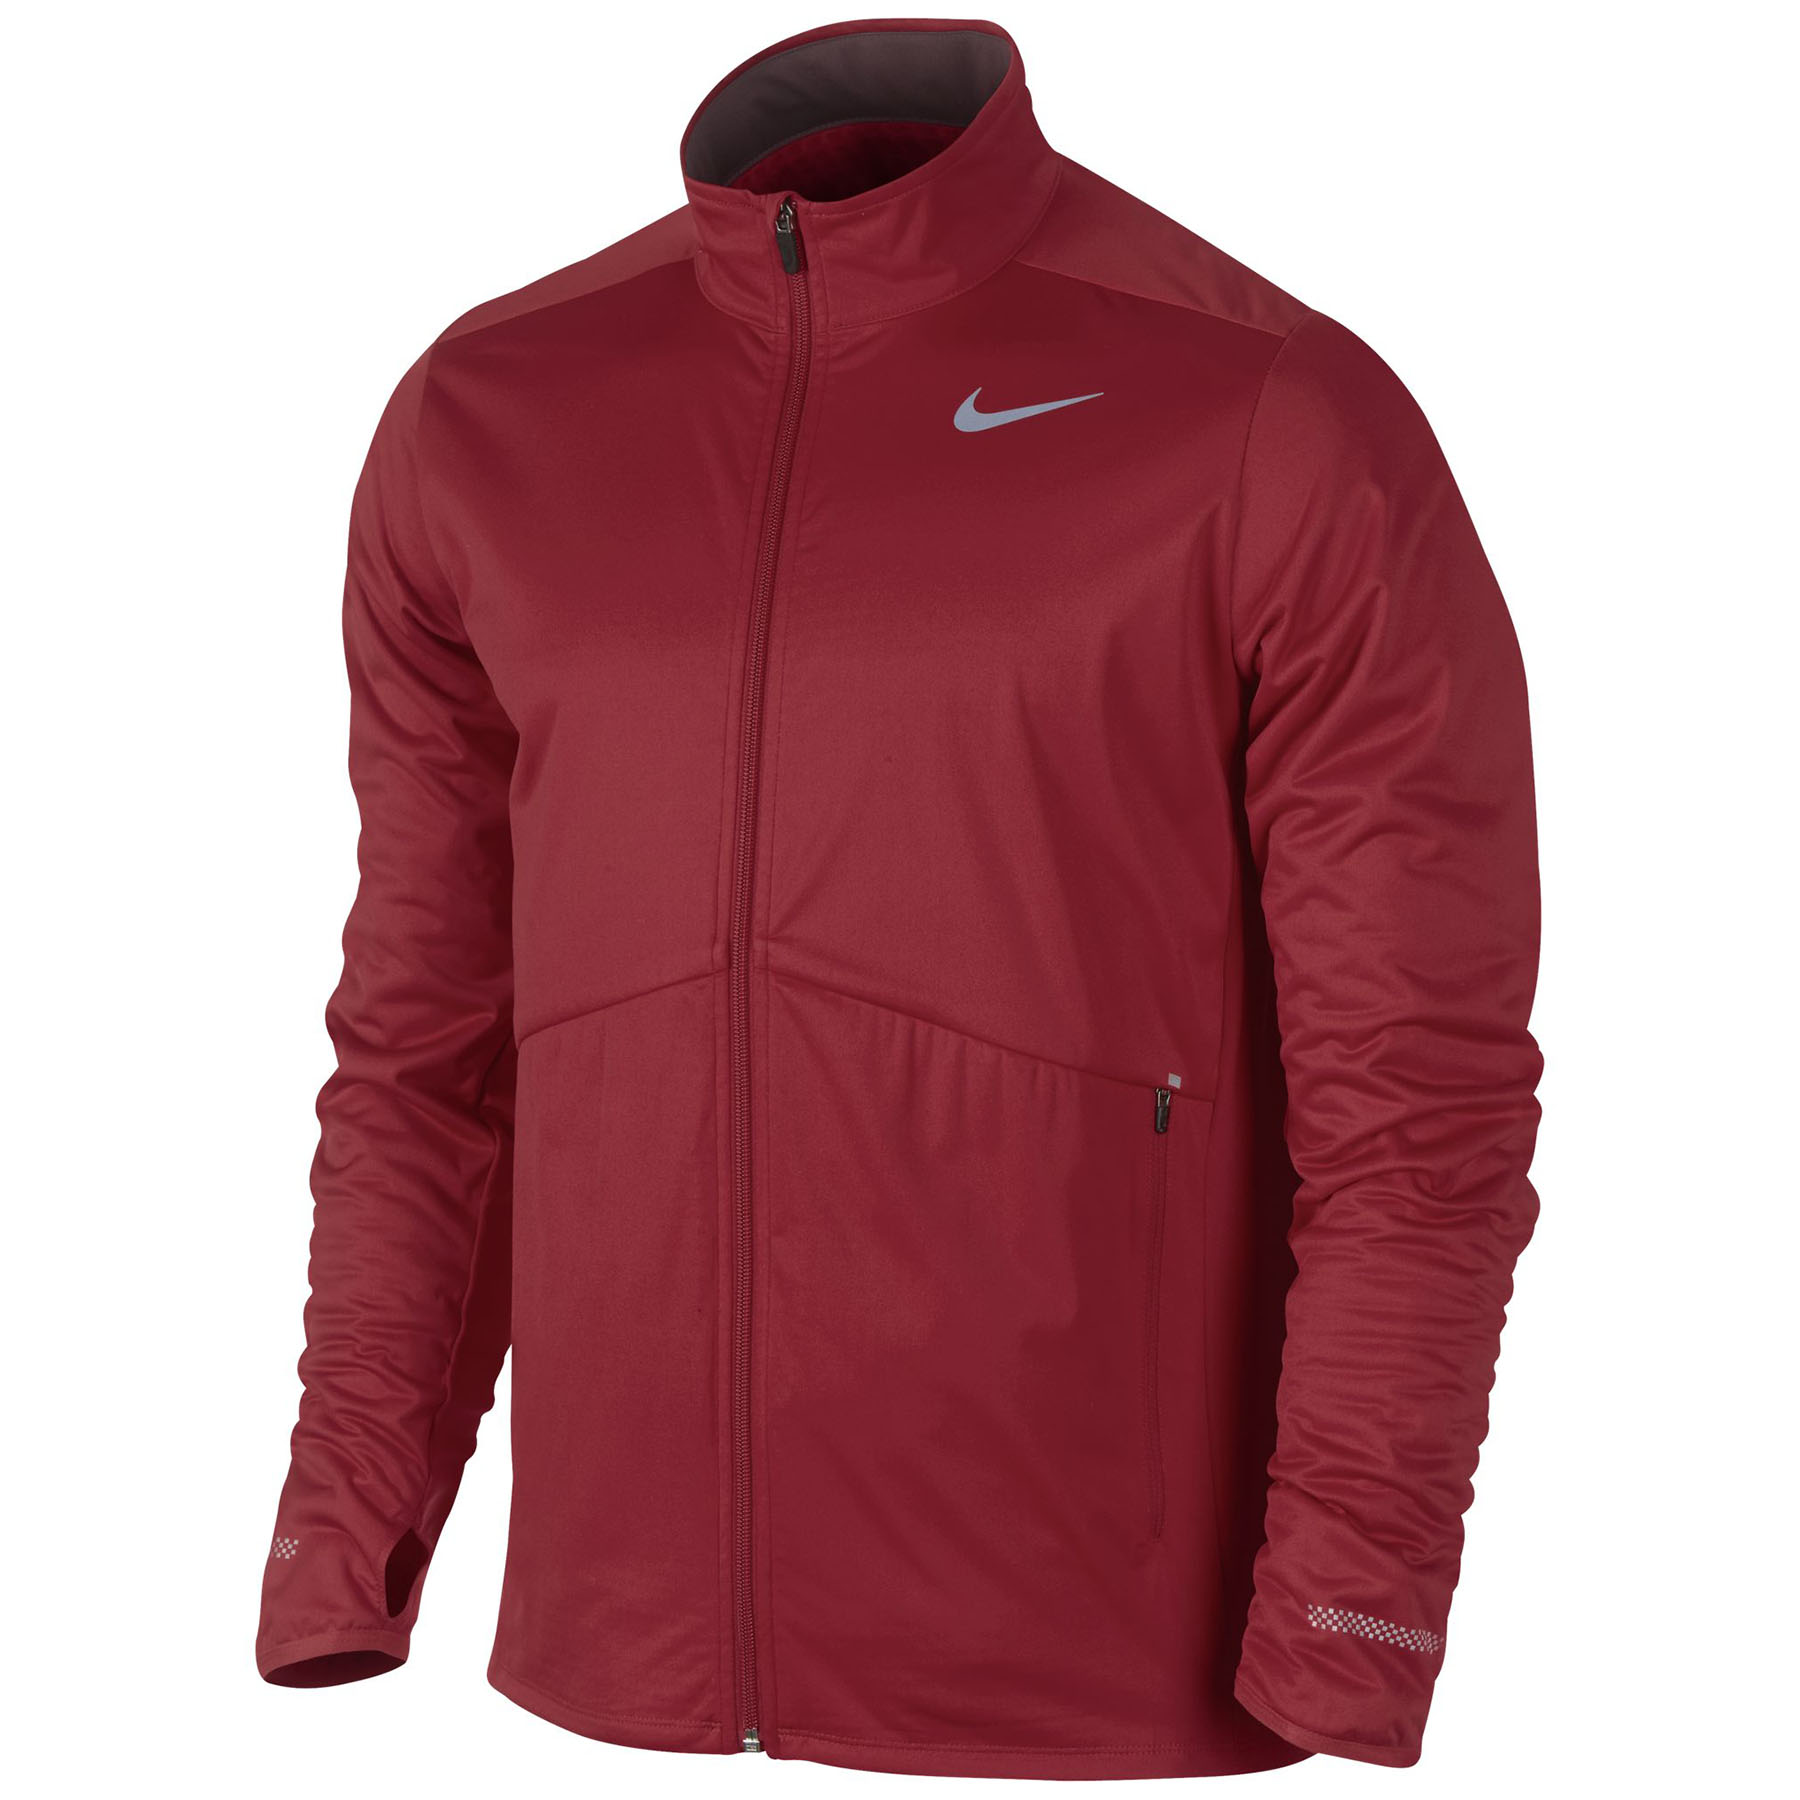 Nike Element Shield Full Zip Jacket Red